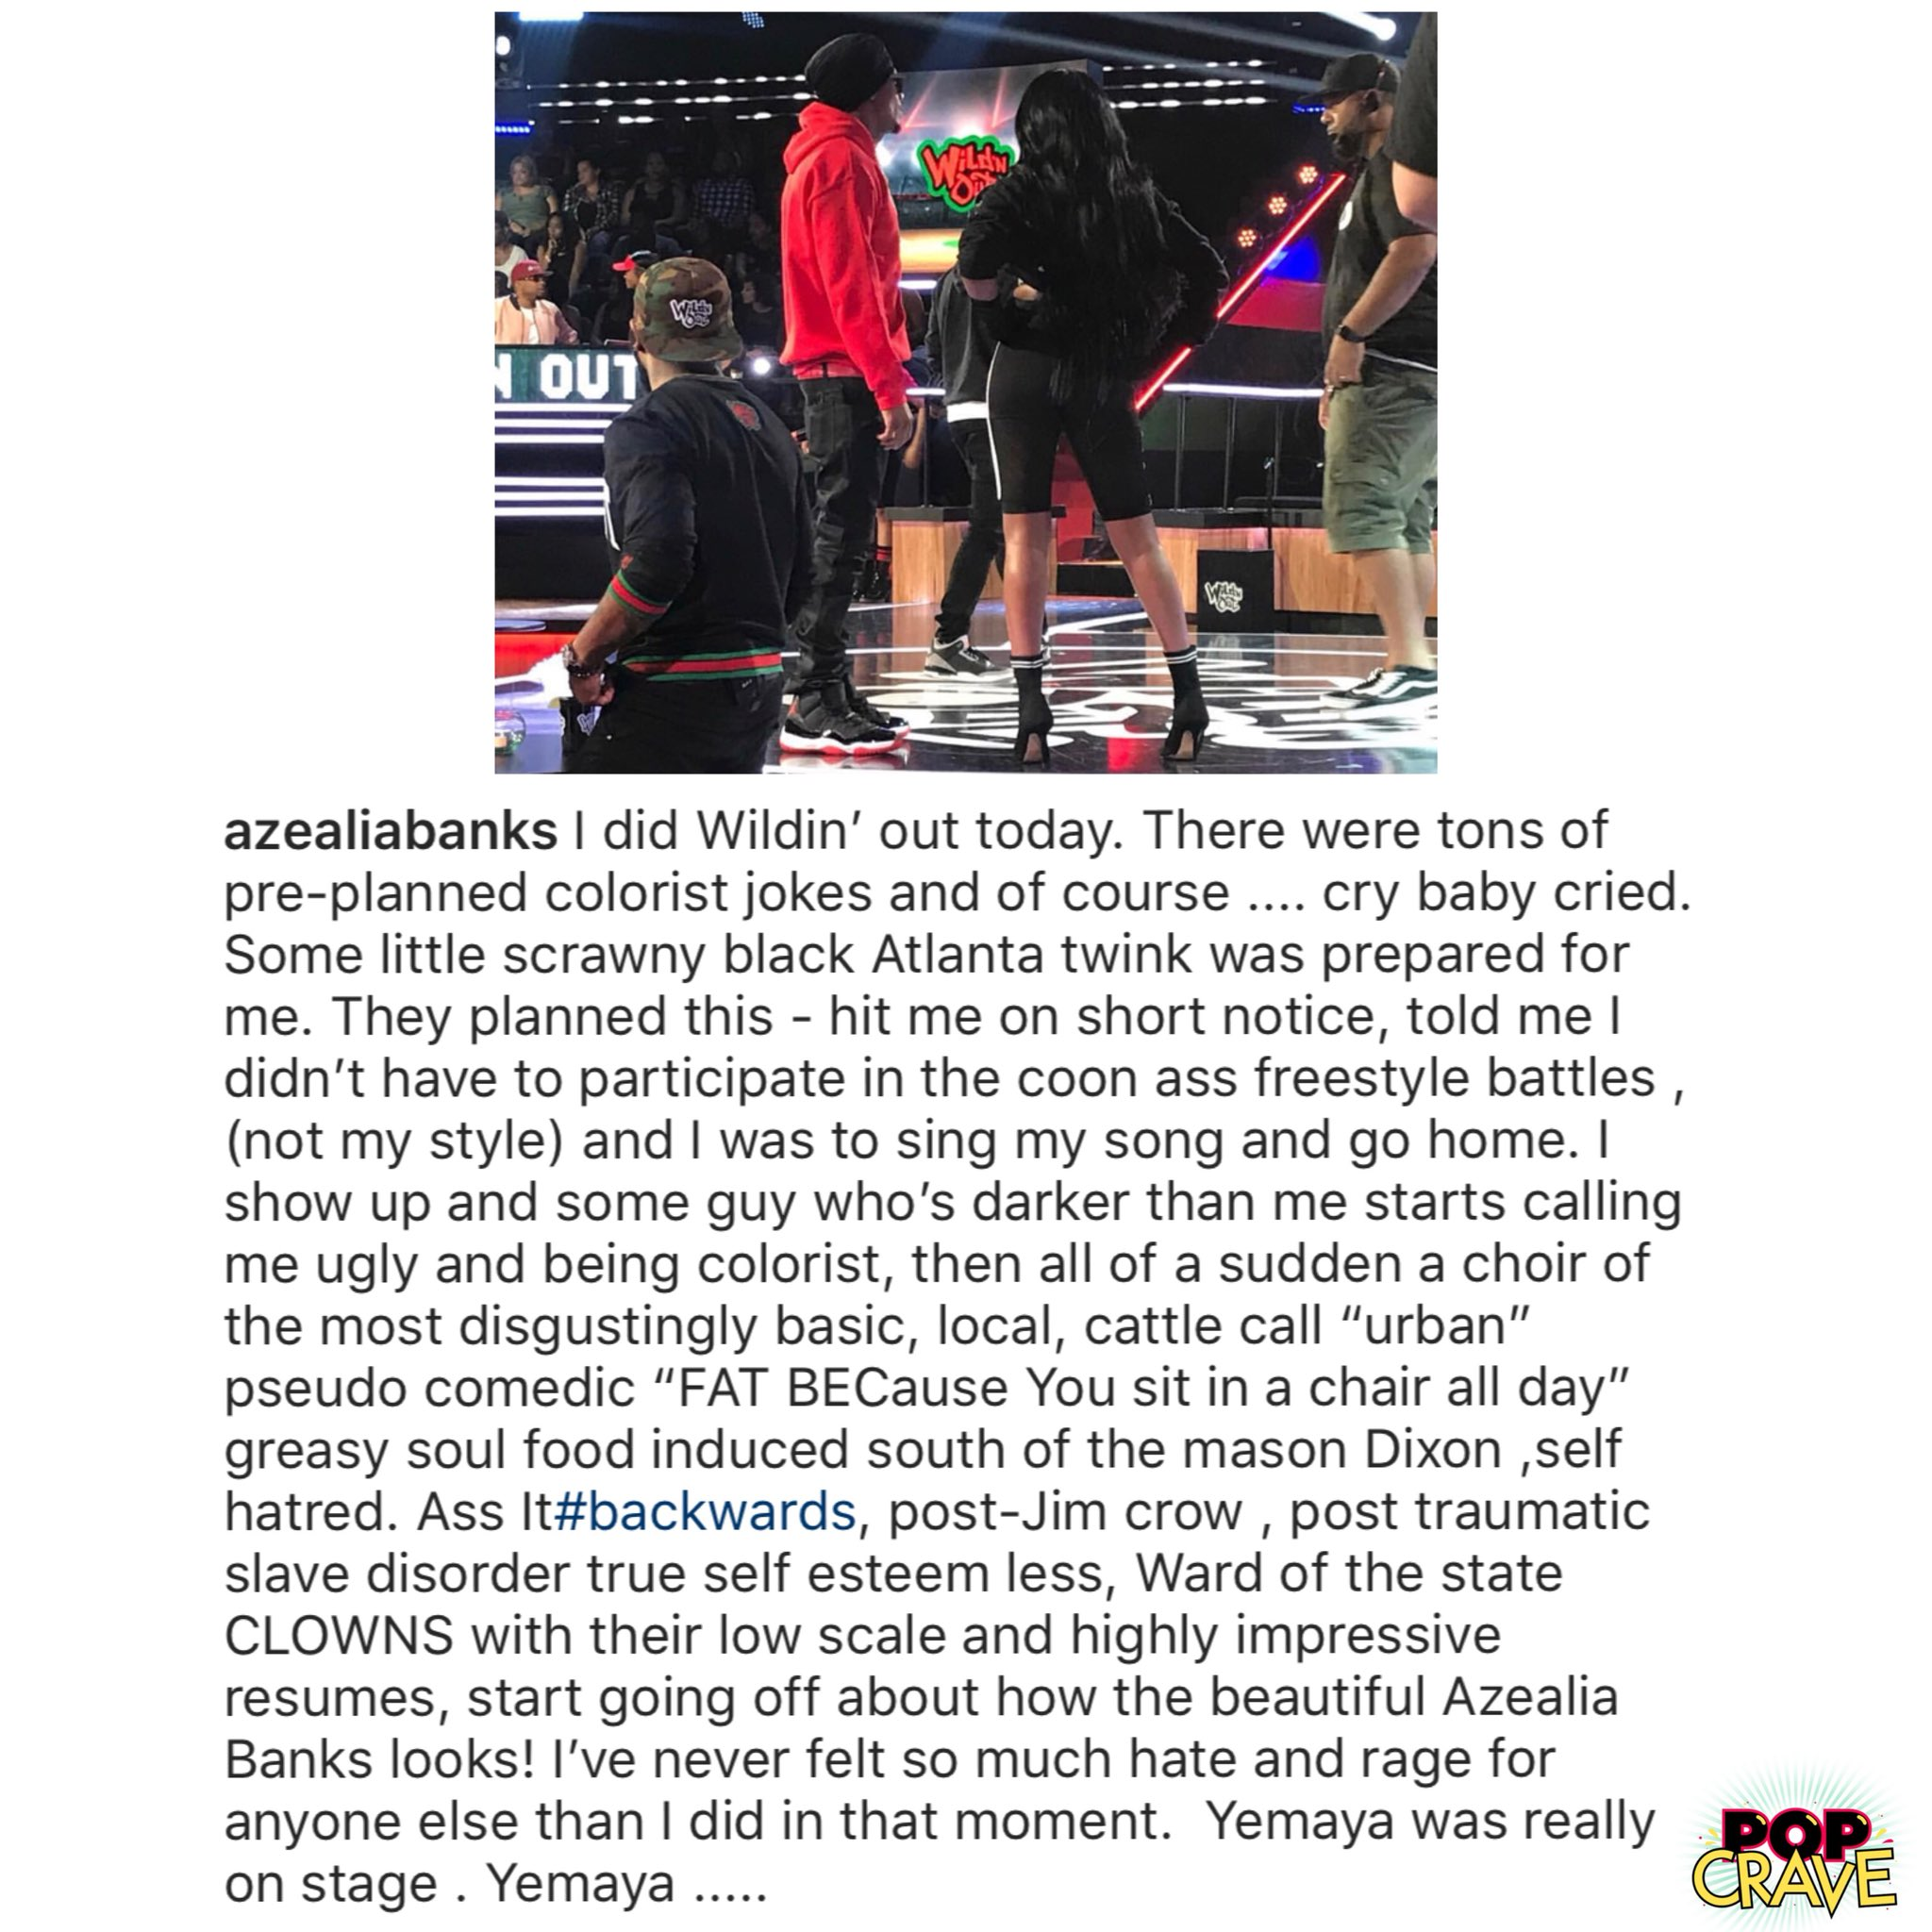 Pop Crave On Twitter Azealia Banks Reveals Wildnout Made Her Cry After They Ambushed Her With Jokes About Her Appearance And Skin Color I Ve Never Felt So Much Hate And Rage Https T Co Btoflwgglb